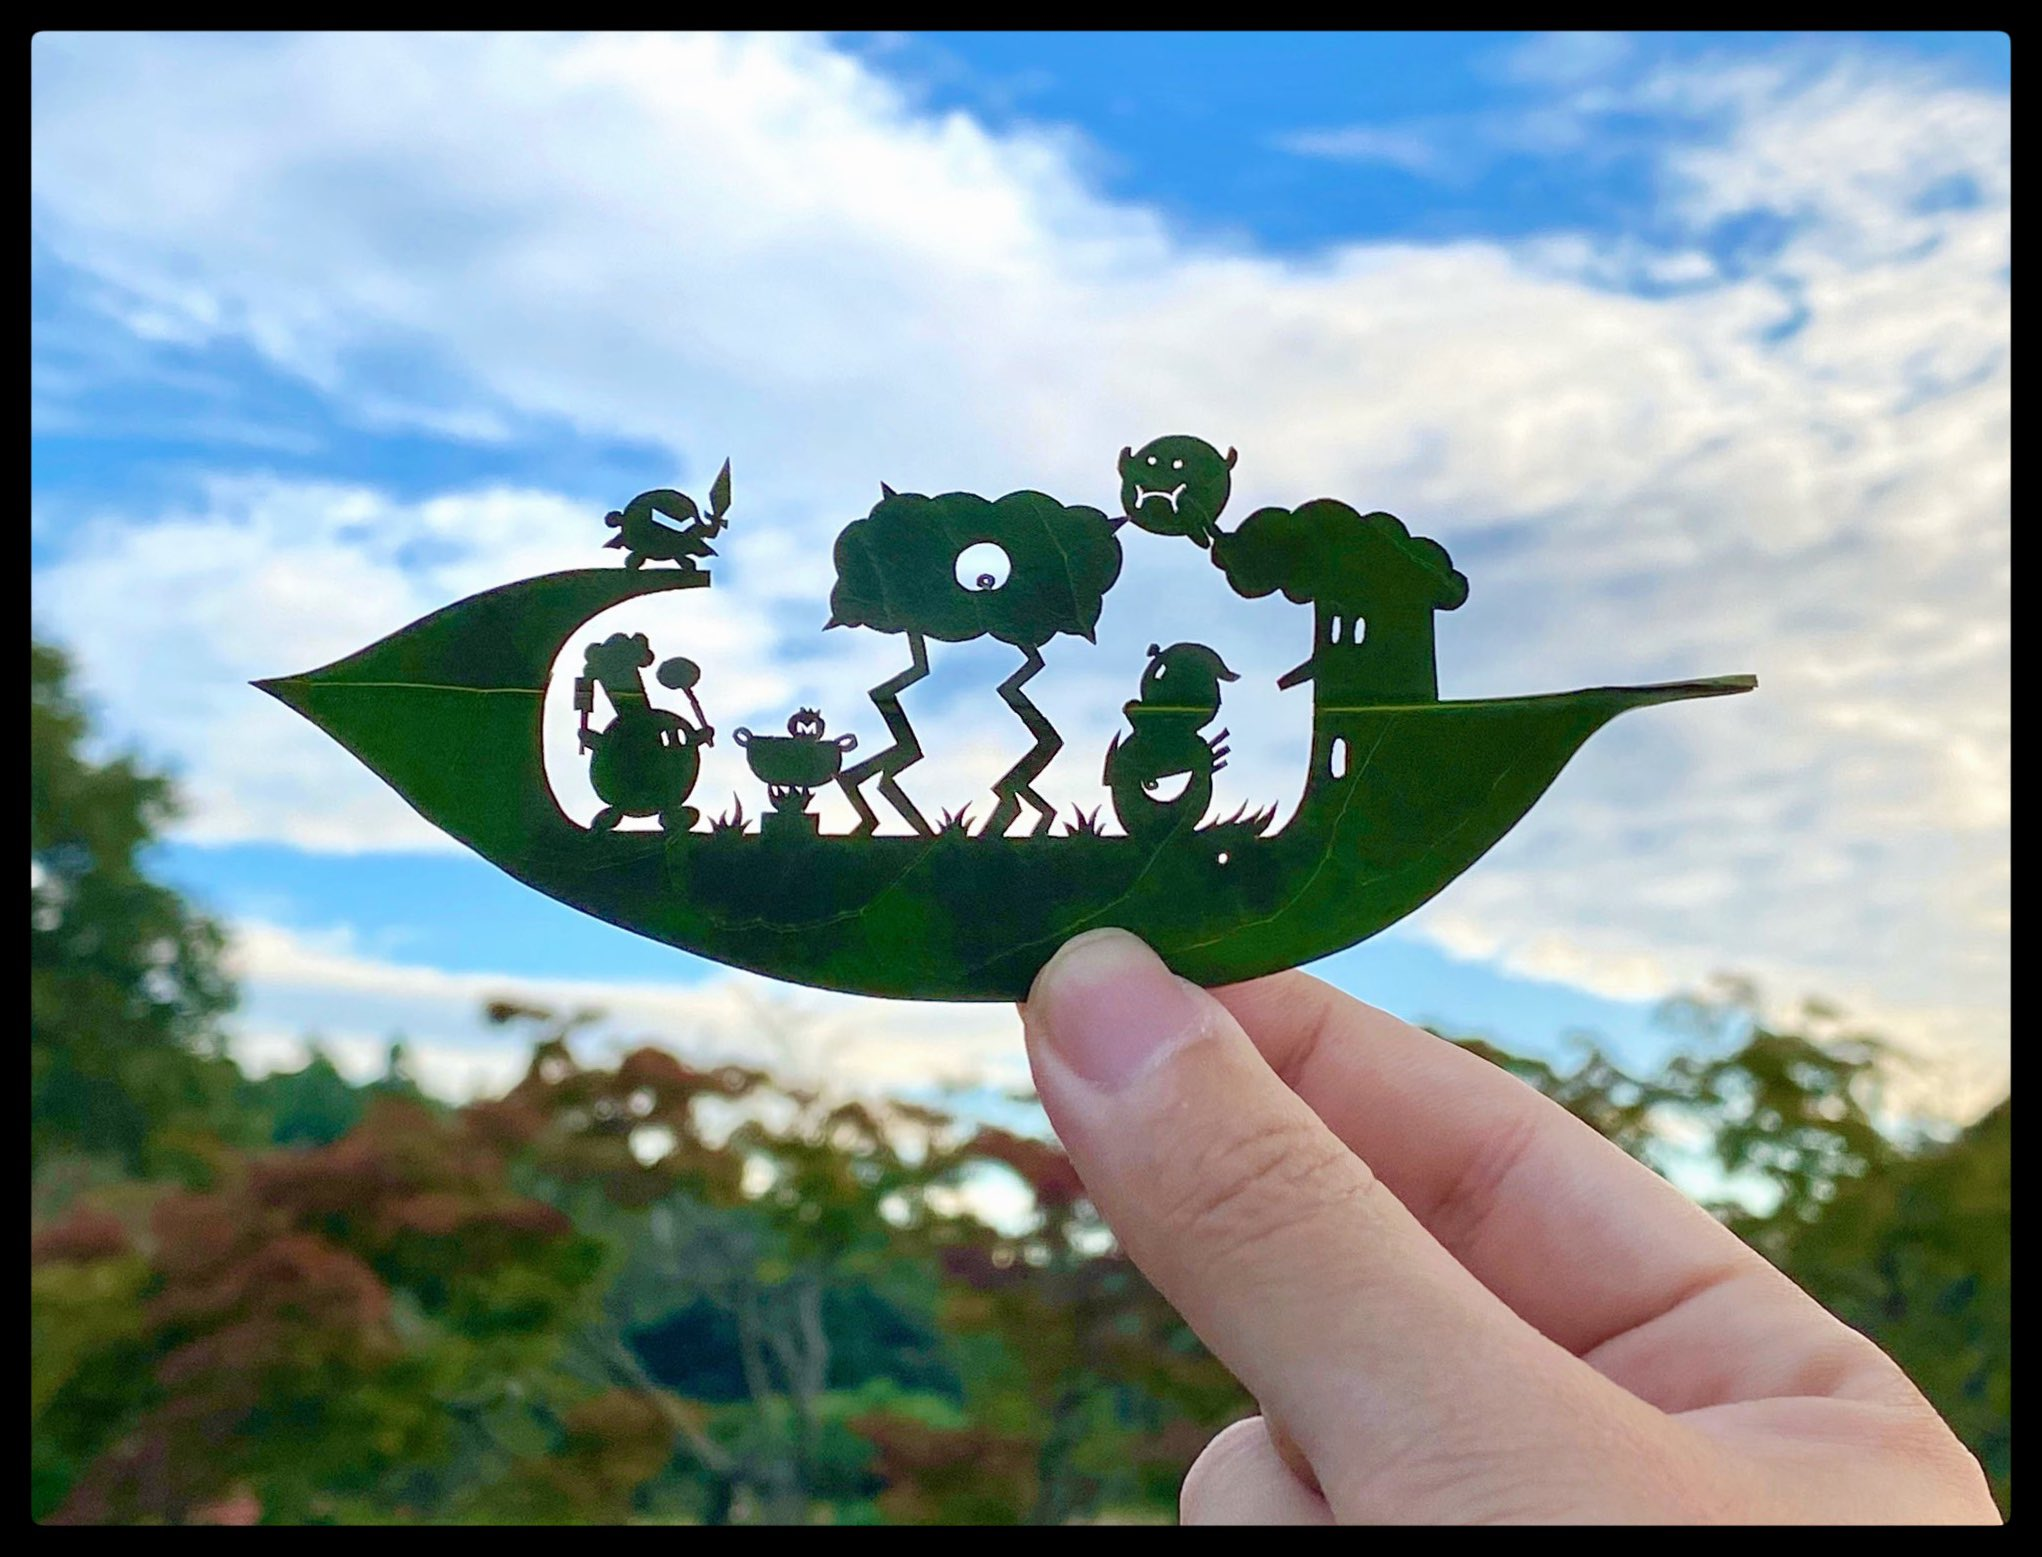 A photo of a hand holding a green leaf that has cut out in it a scene of cartoonish monsters.